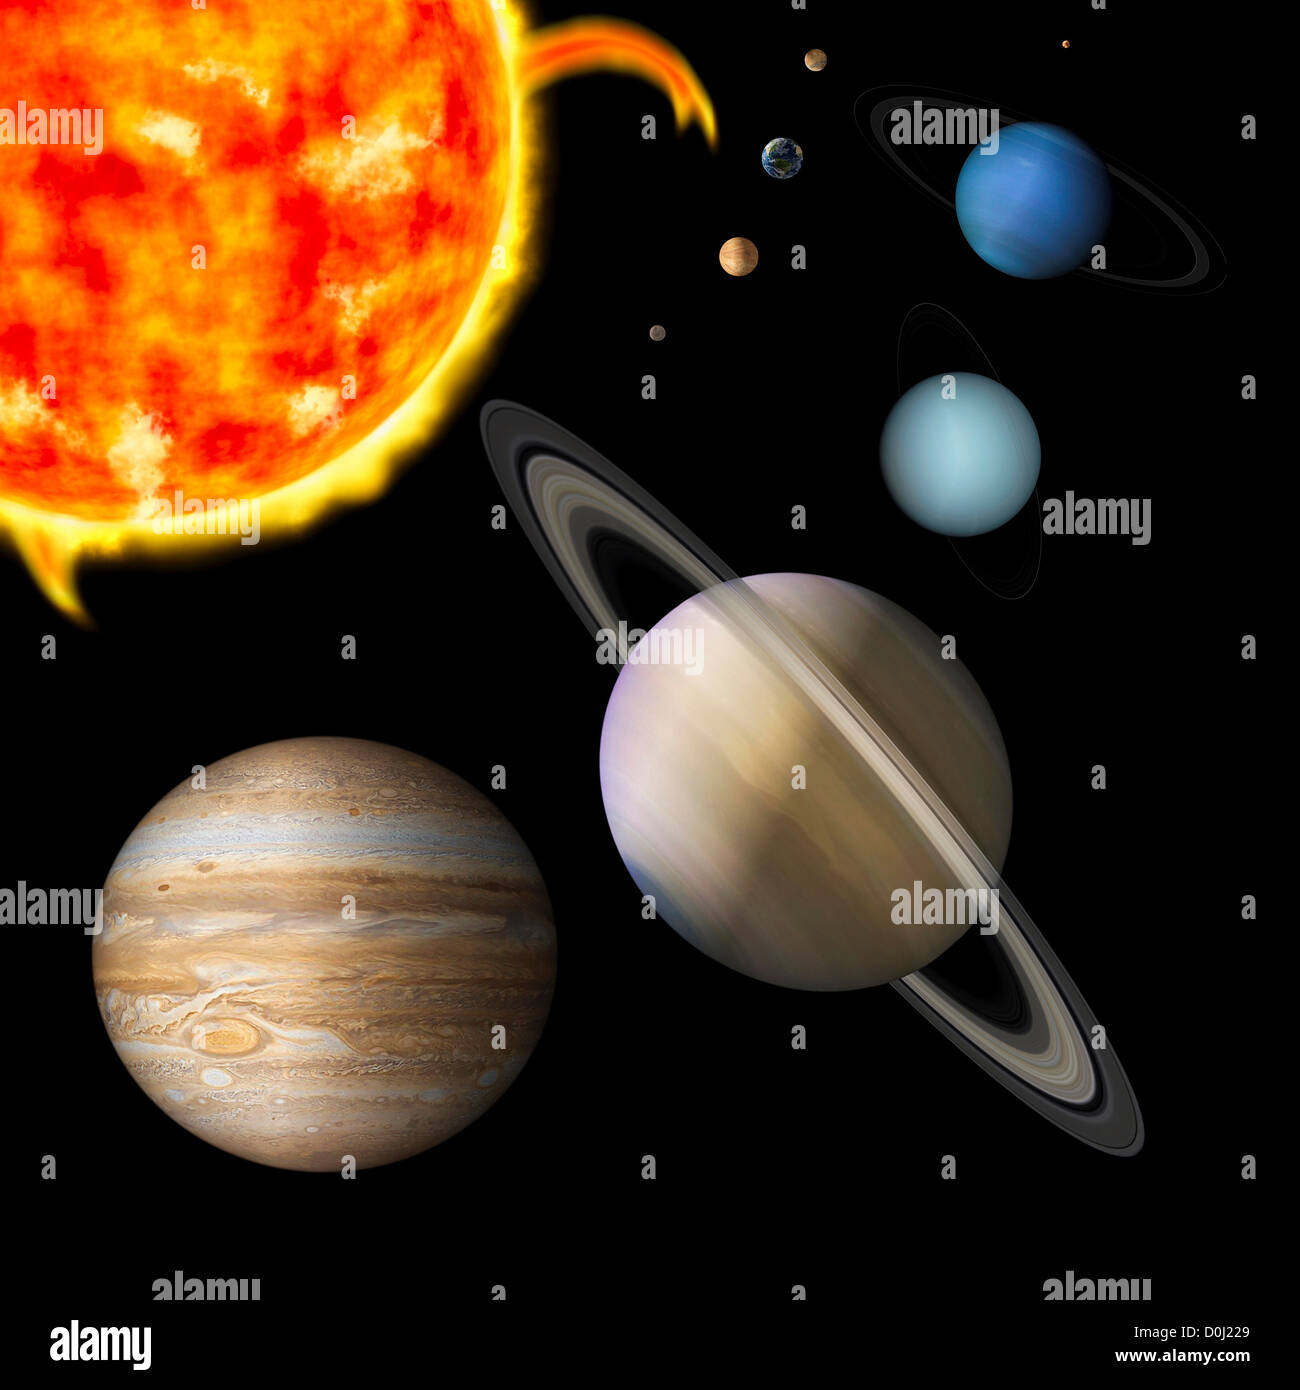 an introduction to the solar system the sun and the nine planets Two recent studies have shown that the existence of a mysterious, hypothetical planet nine could explain why the planets in our solar system don't fully line up with the sun researchers have been speculating about a ninth planet since january this year, and these latest studies add more weight to.